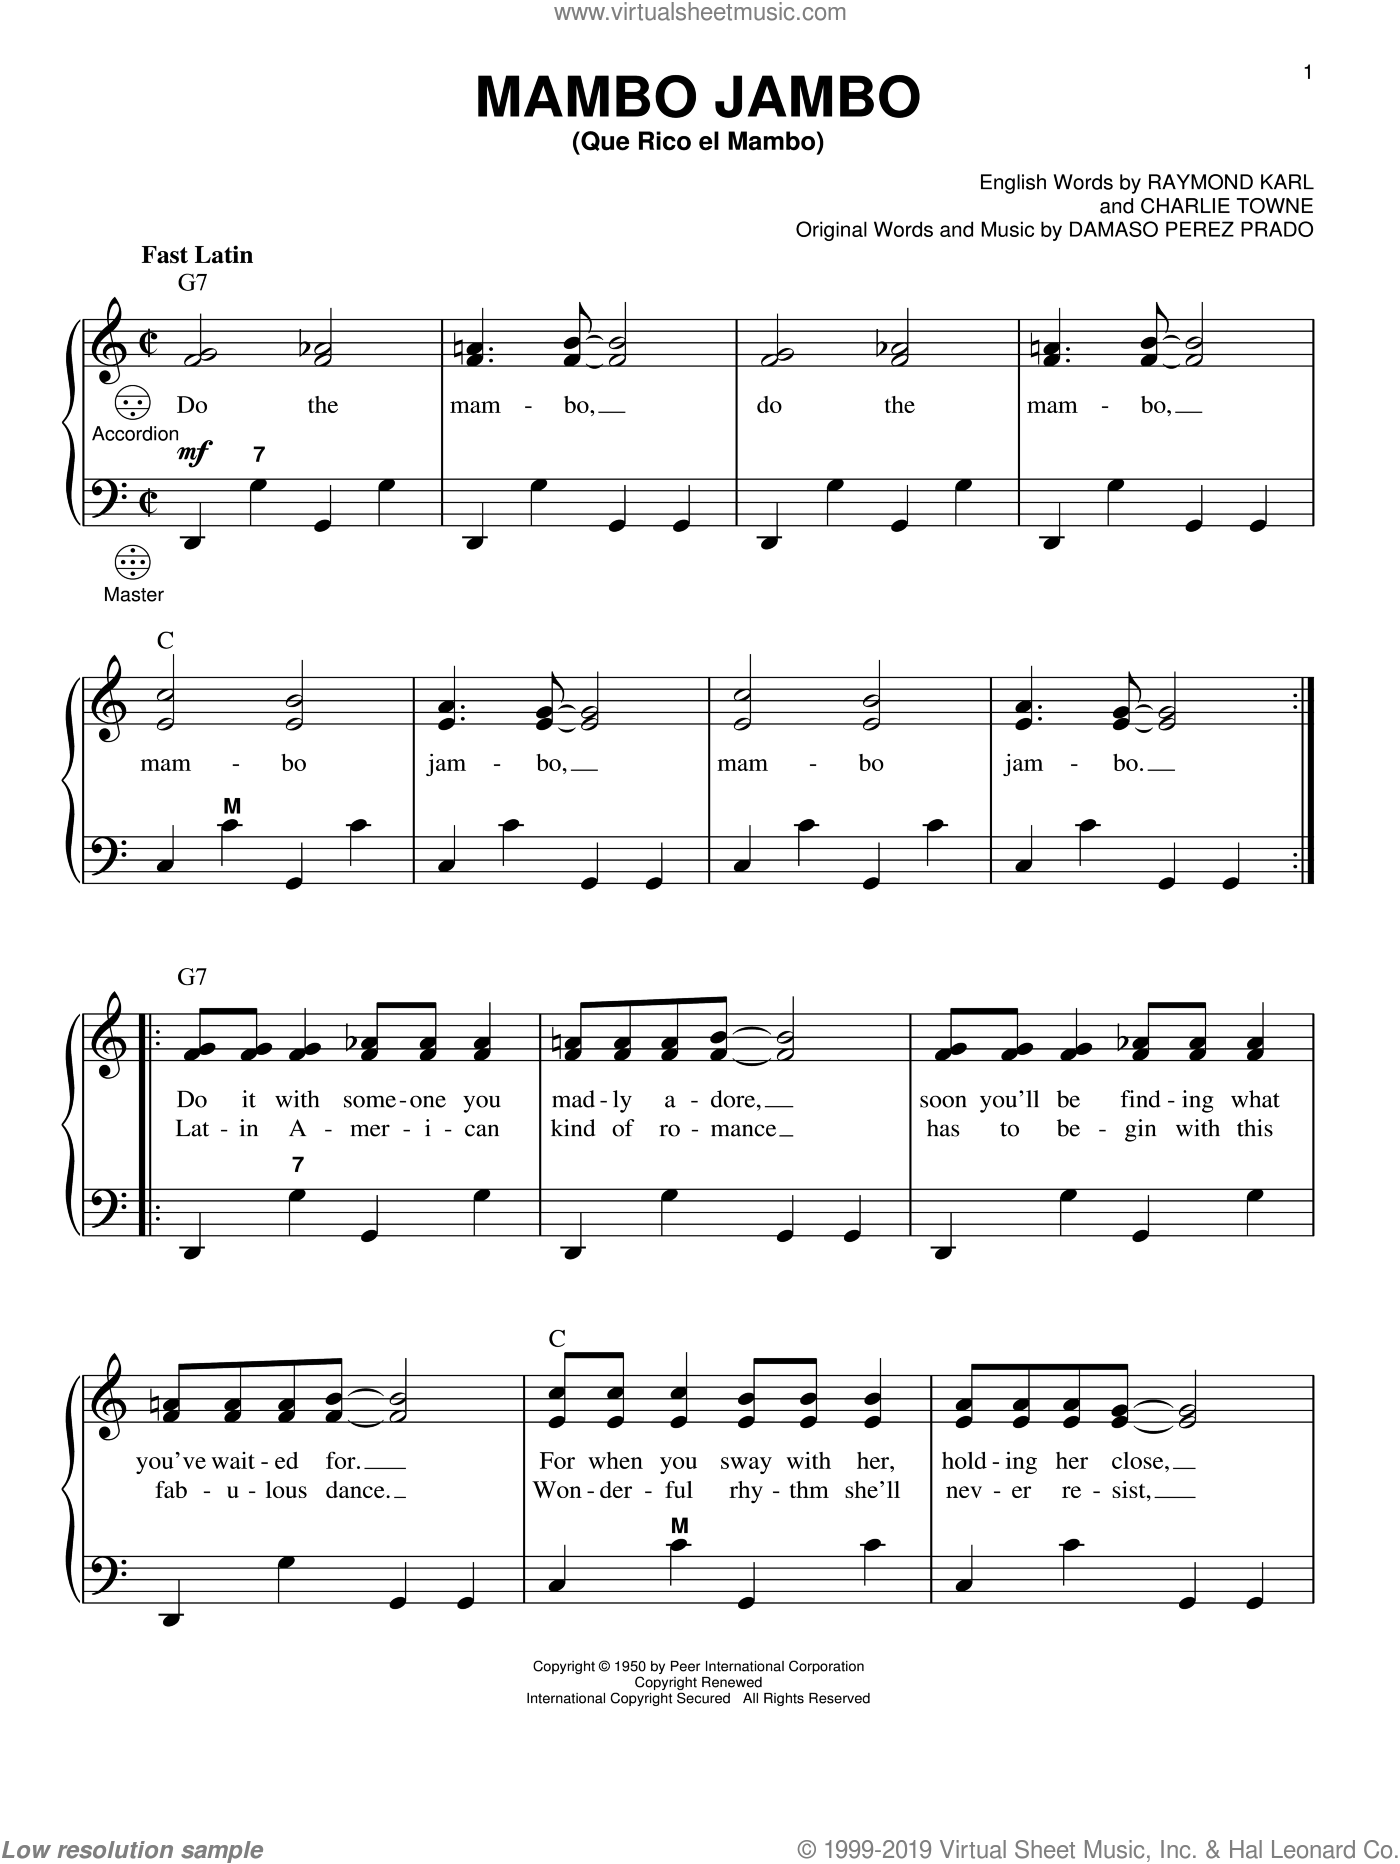 Mambo Jambo (Que Rico El Mambo) sheet music for accordion by Raymond Karl, Gary Meisner, Perez Prado and Damaso Perez Prado. Score Image Preview.